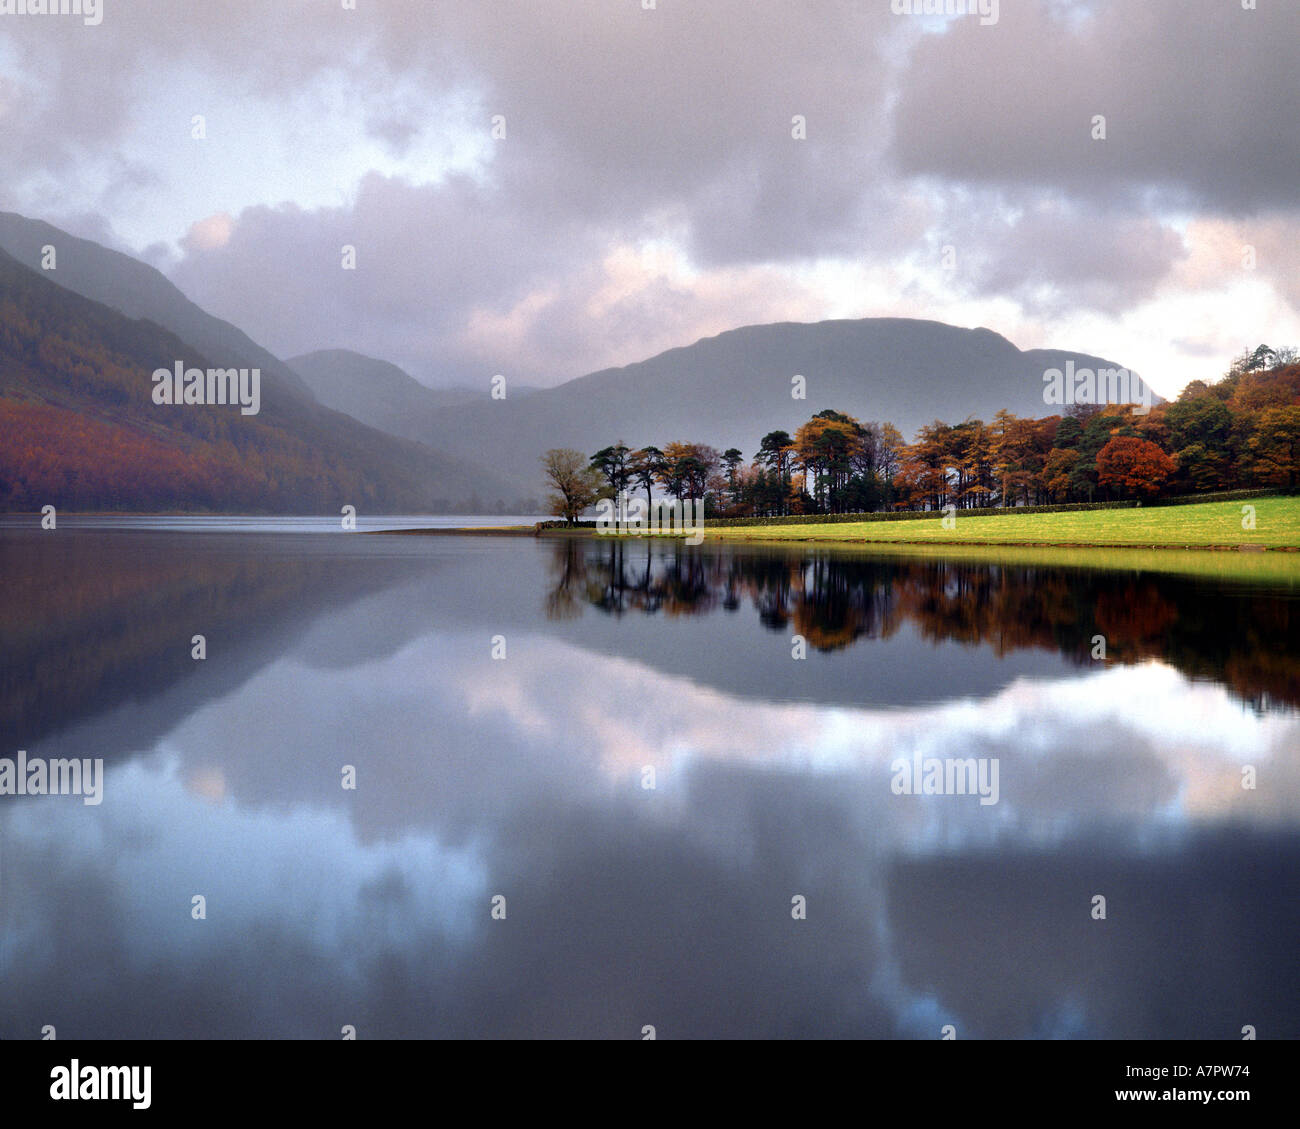 GB - CUMBRIA: Buttermere in the Lake District National Park - Stock Image